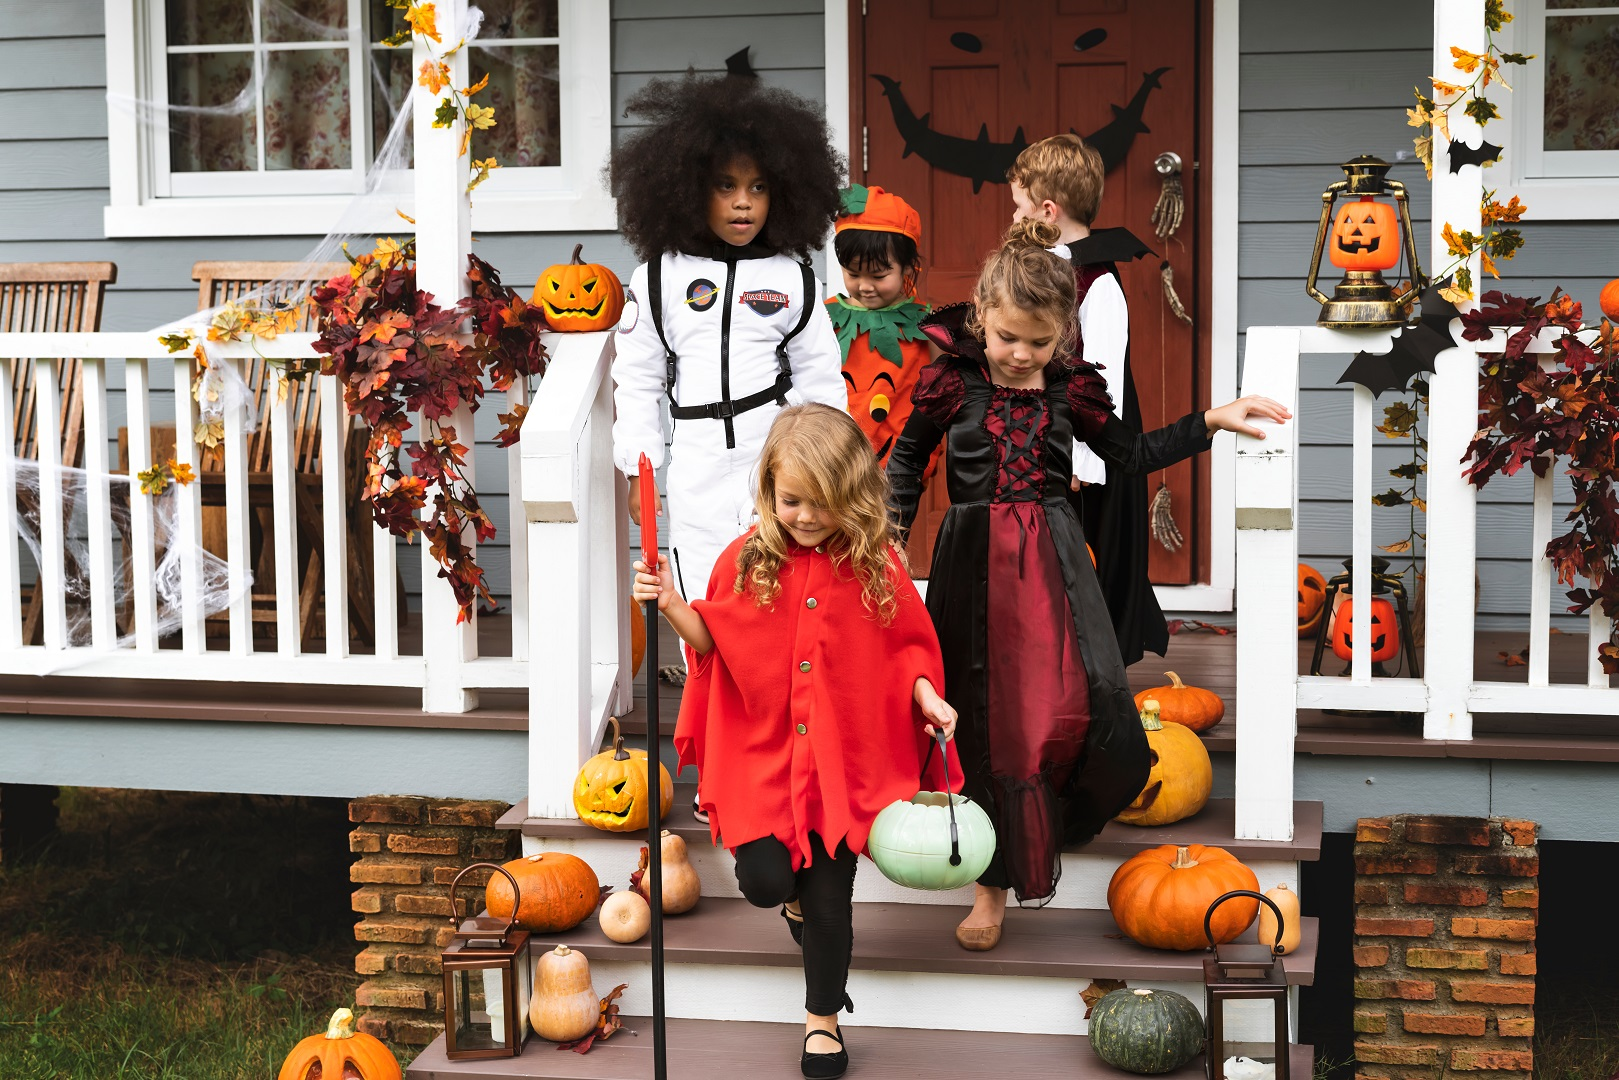 Children Trick or Treating Walking Off Porch